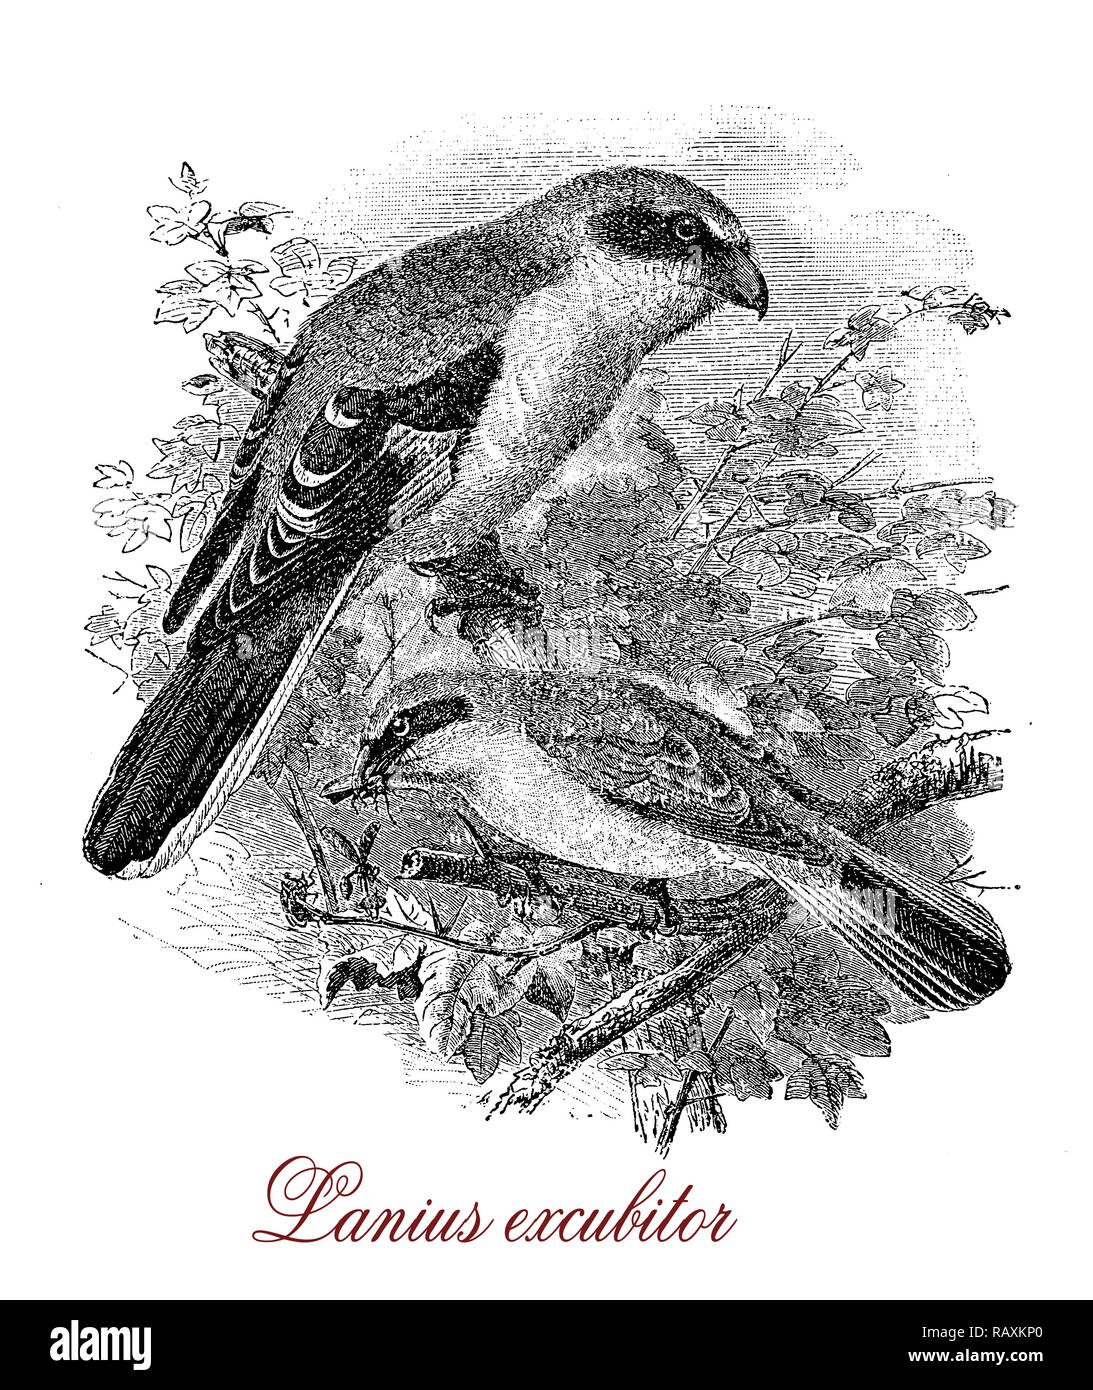 Vintage engraving of Great grey shrike, large songbird with grey pearl head and a black eye mask, carnivorous and rodents hunter - Stock Image